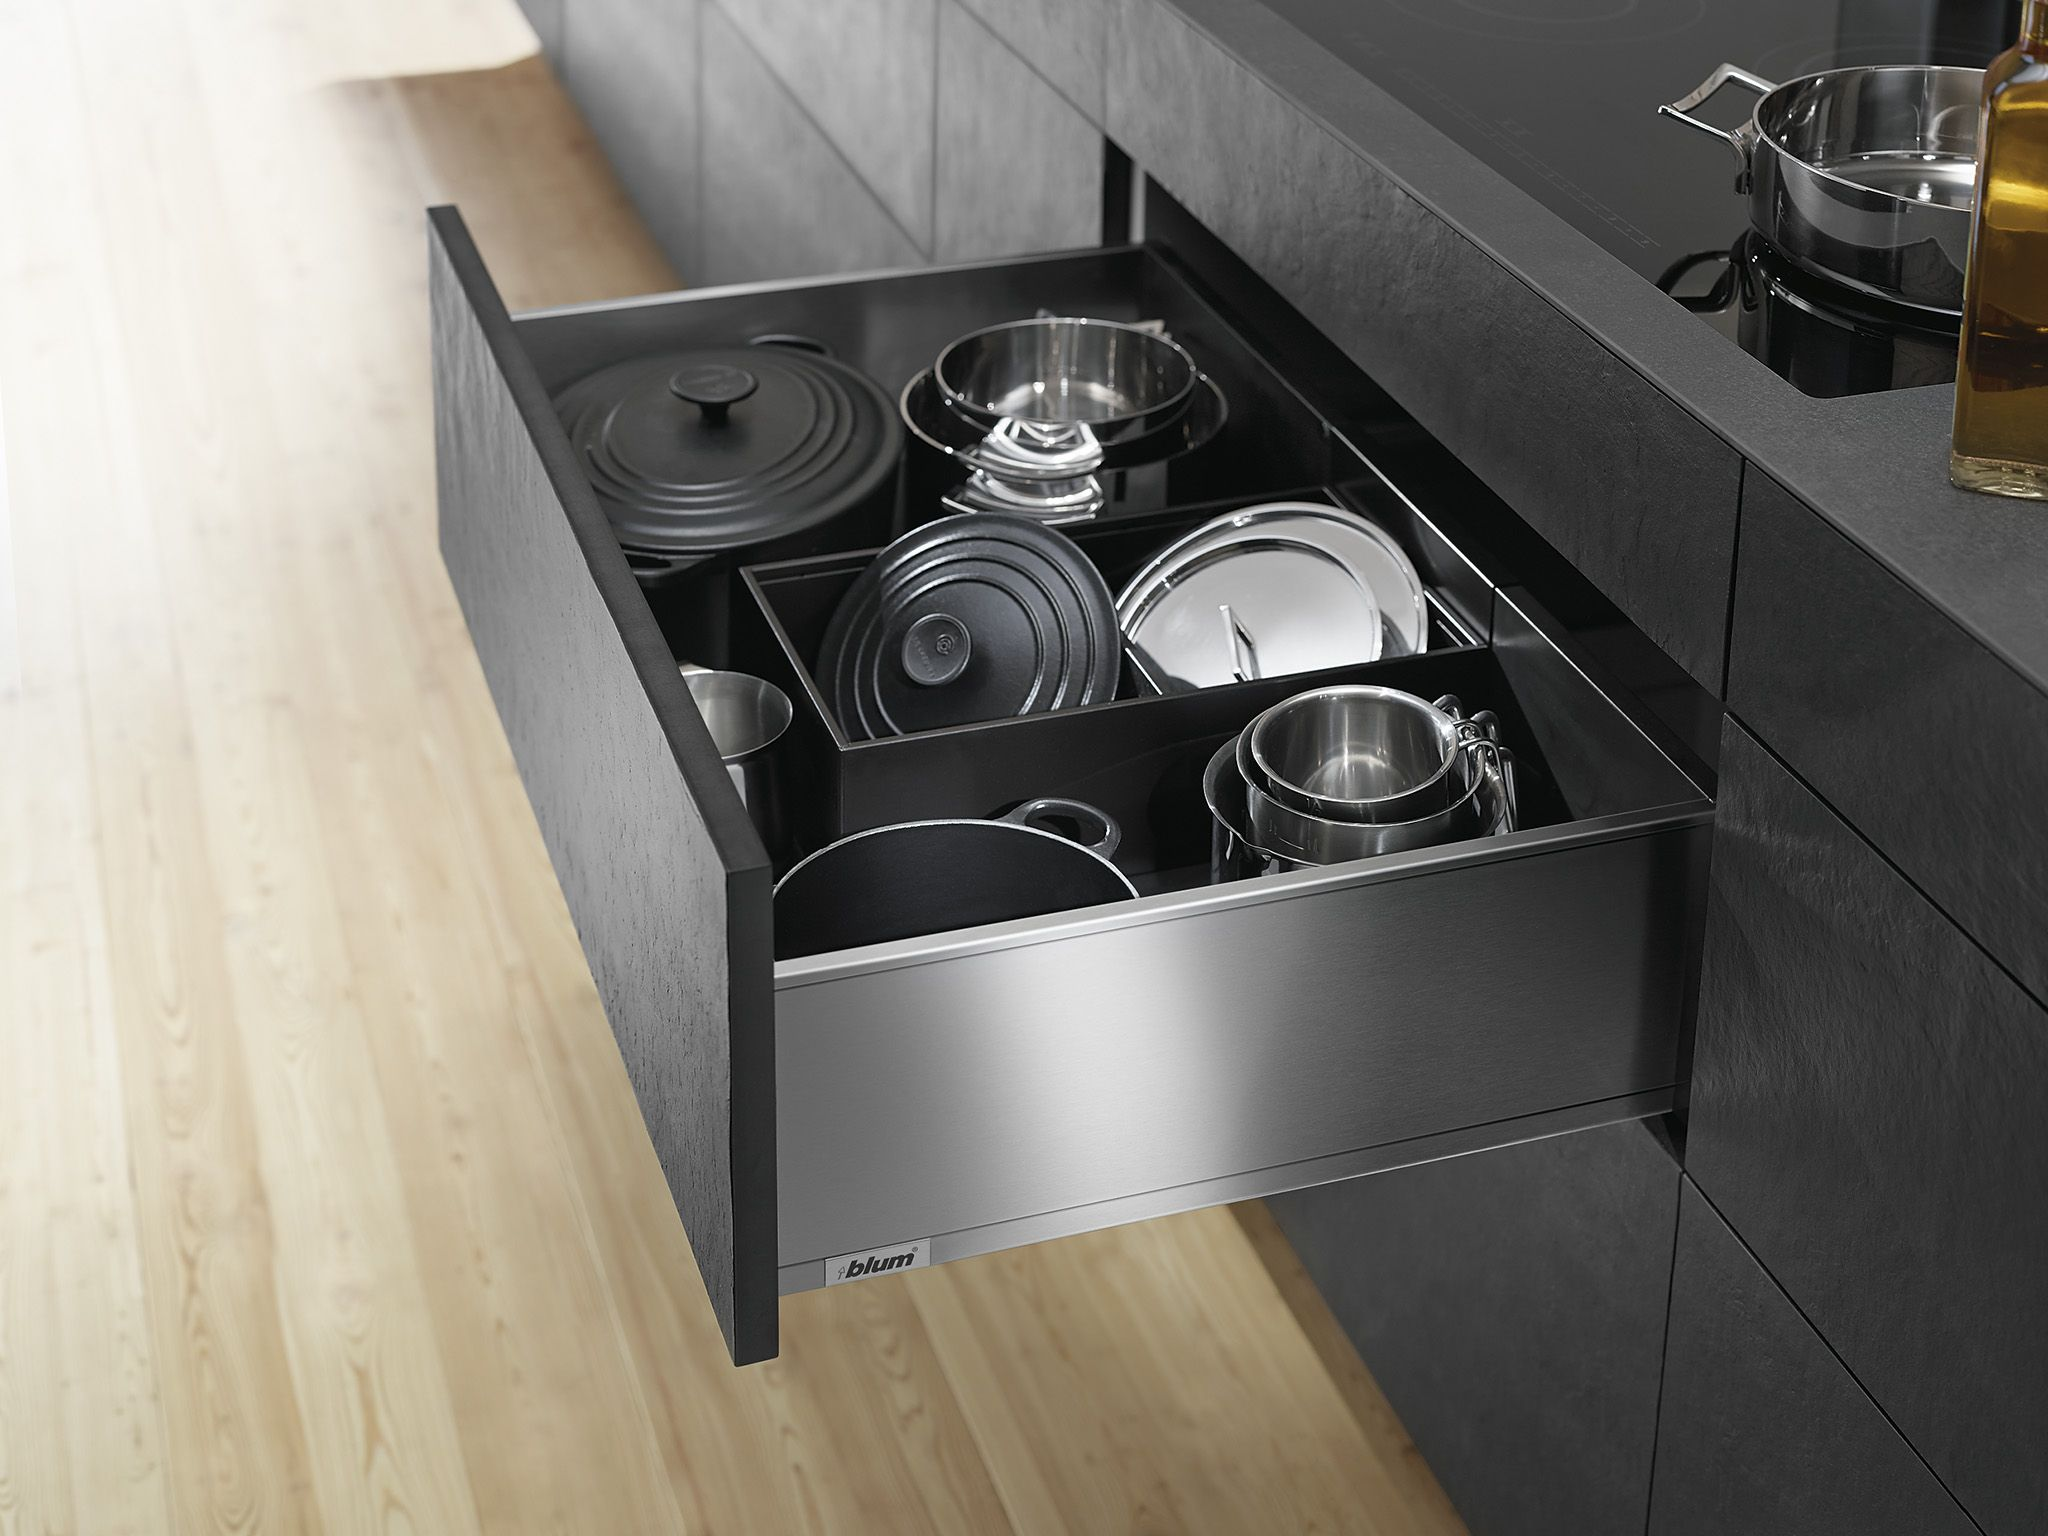 legrabox pure in the kitchen blum pinterest kitchens and house